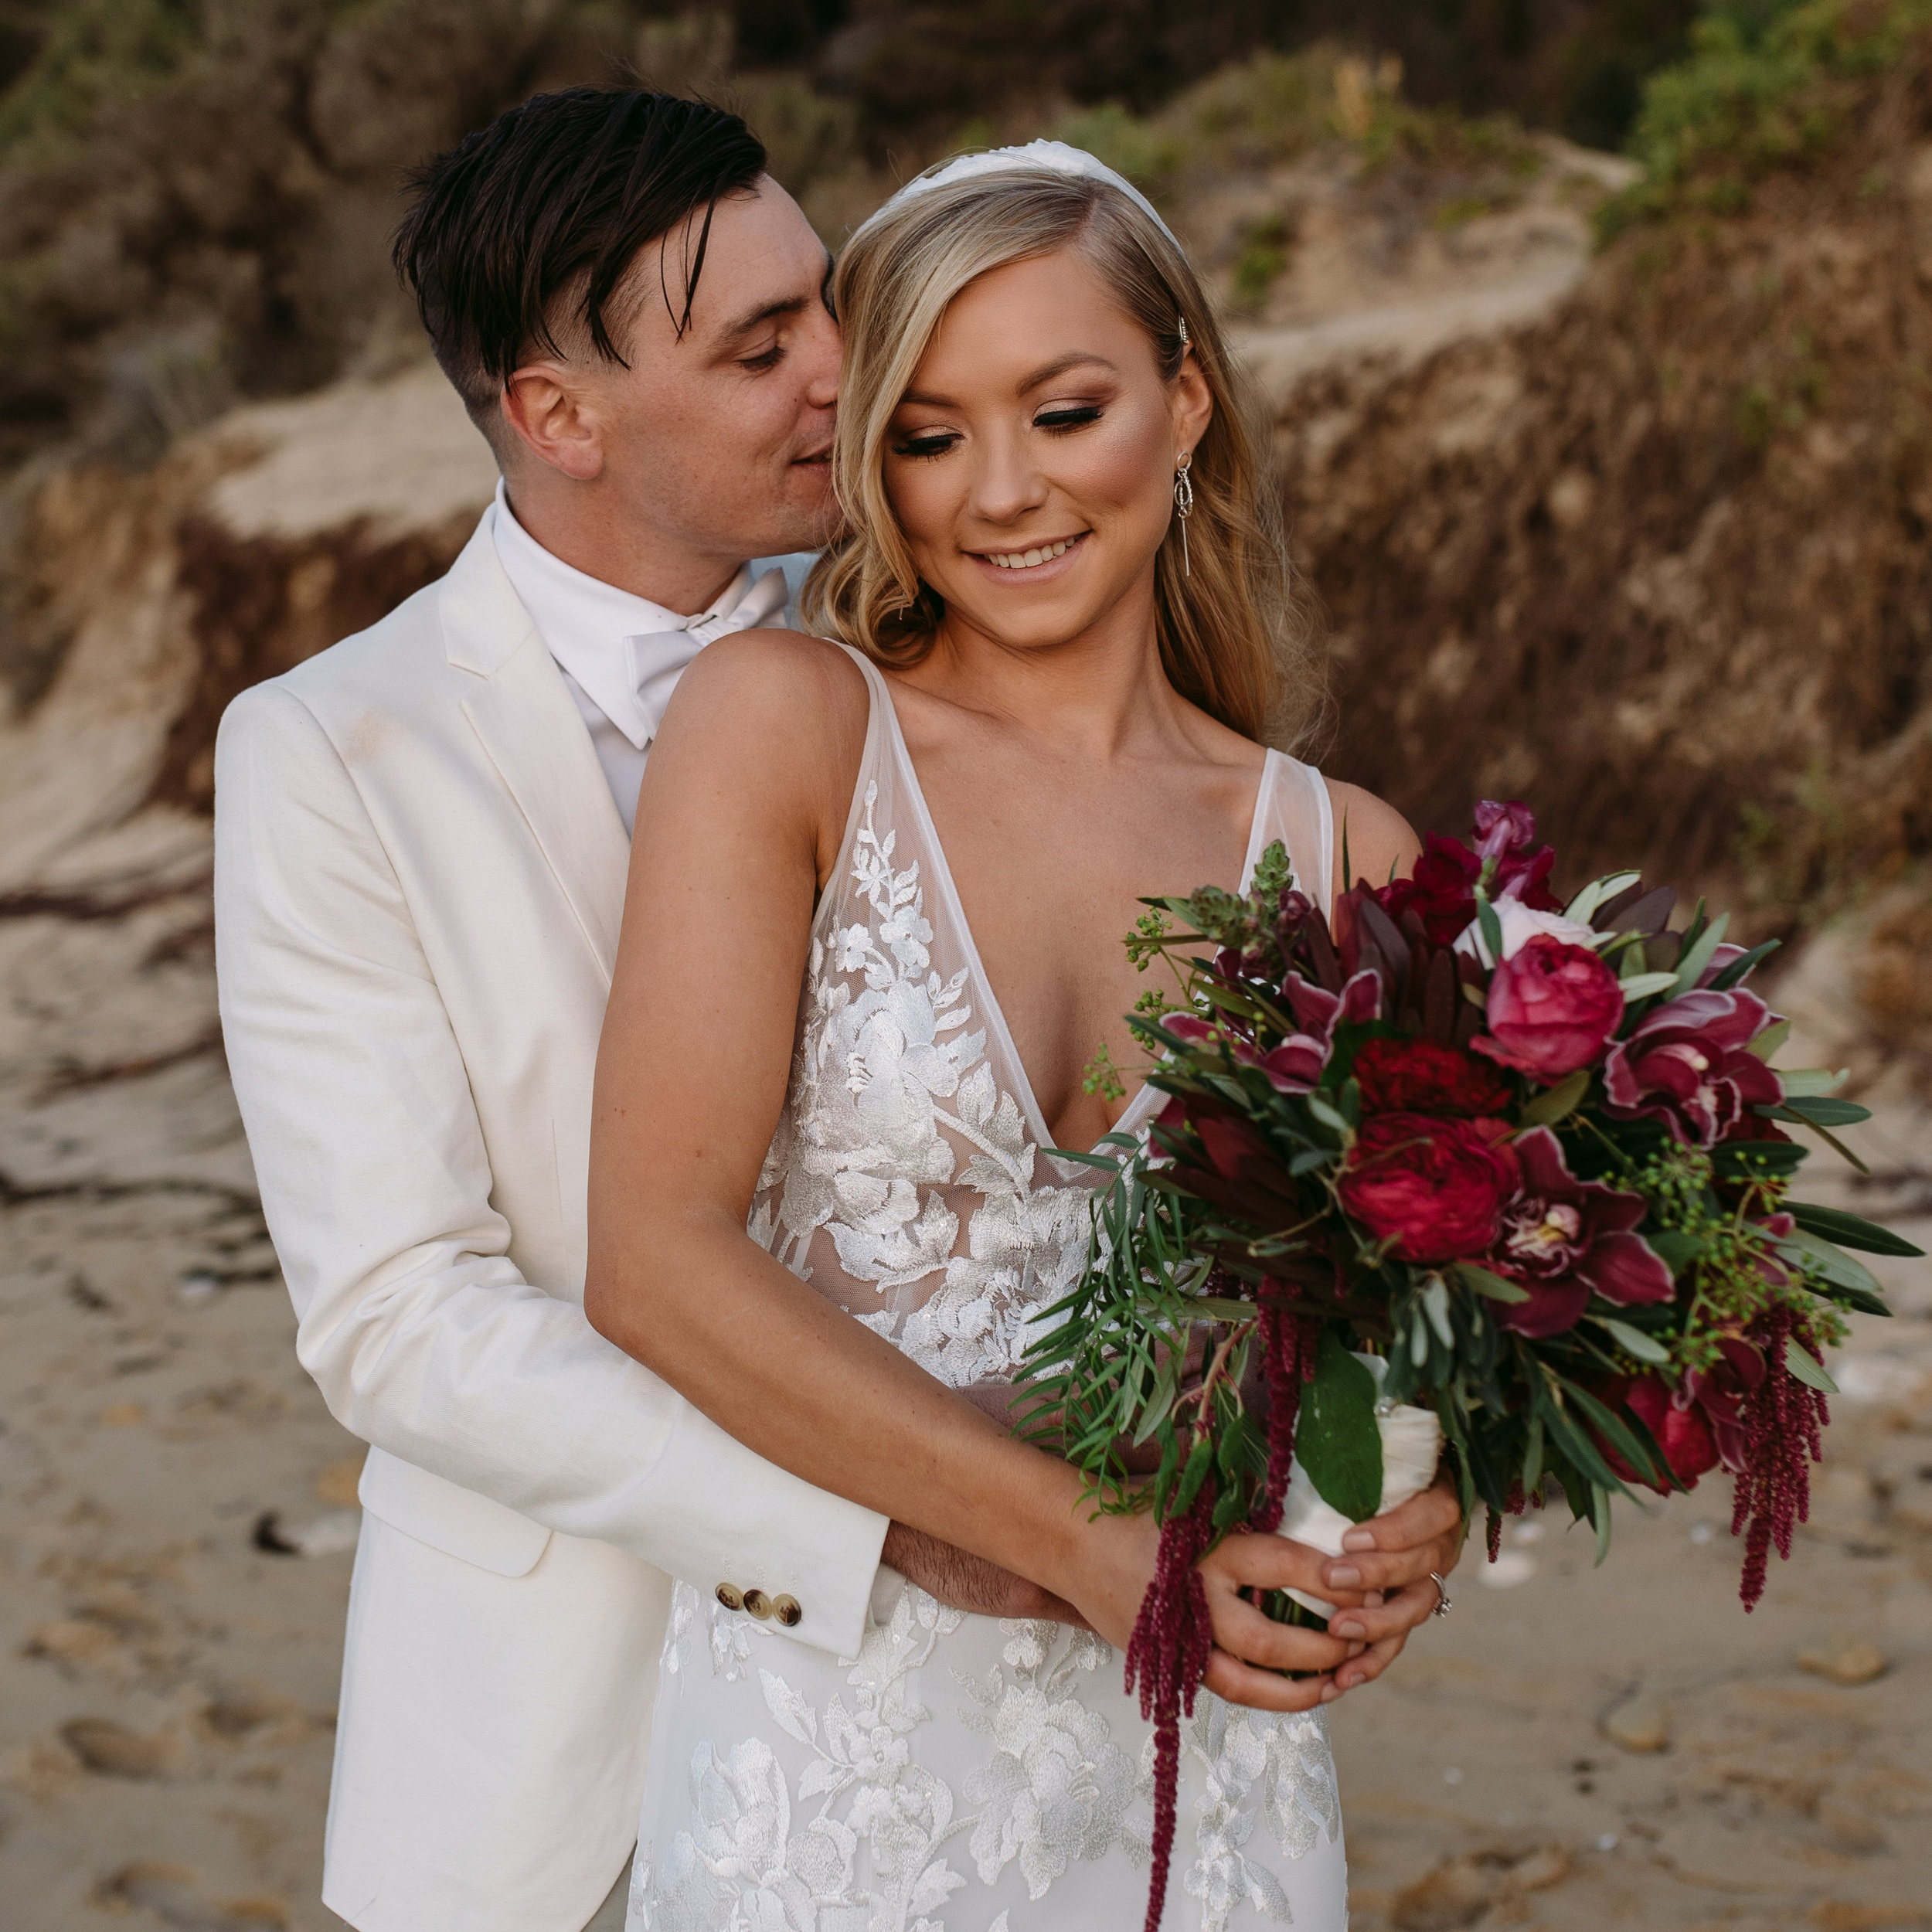 Lucy & Timmy's Portsea Hotel Wedding